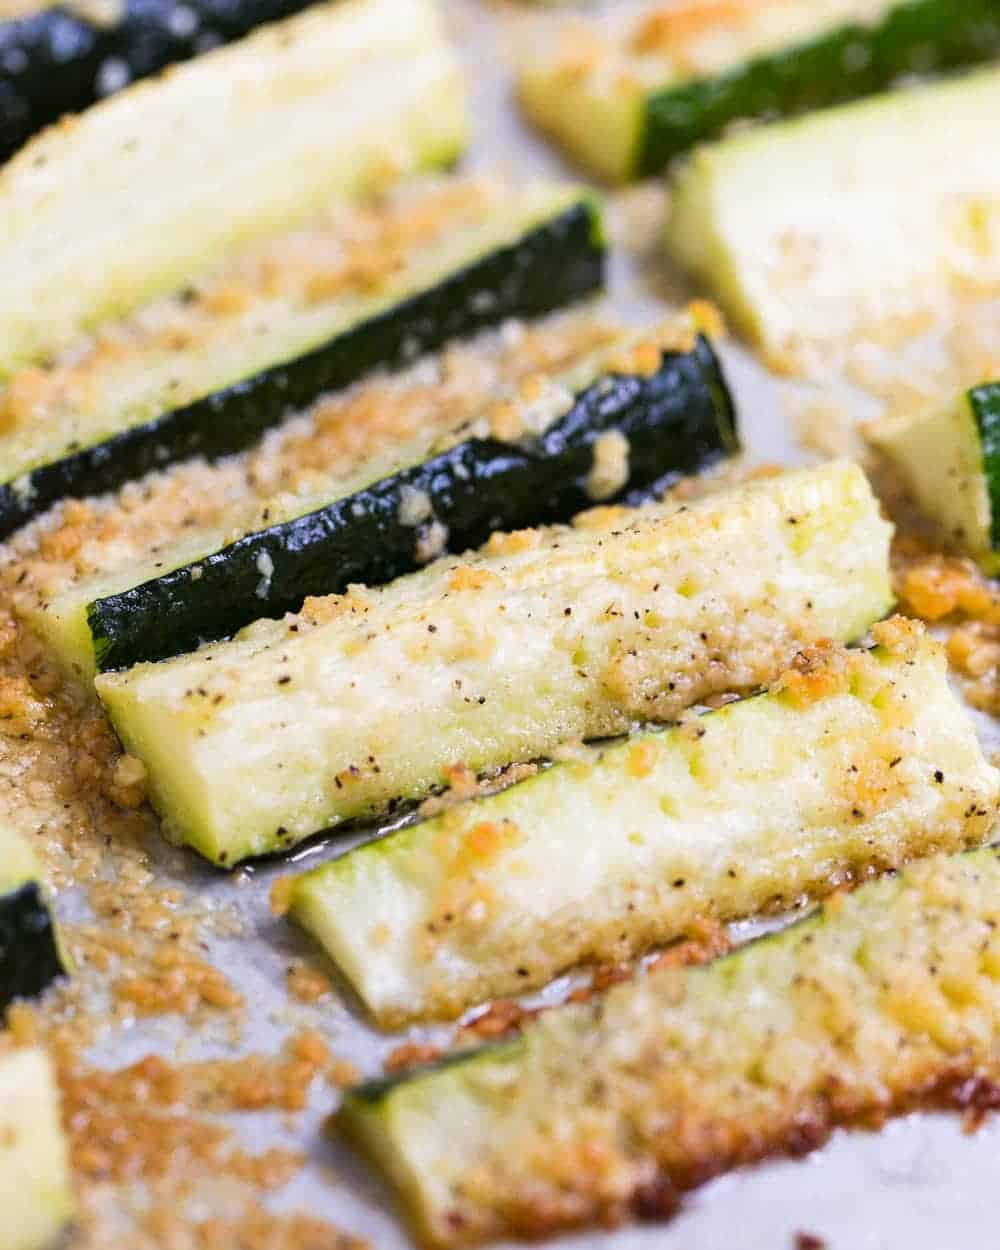 oven baked zucchini fries on a baking sheet